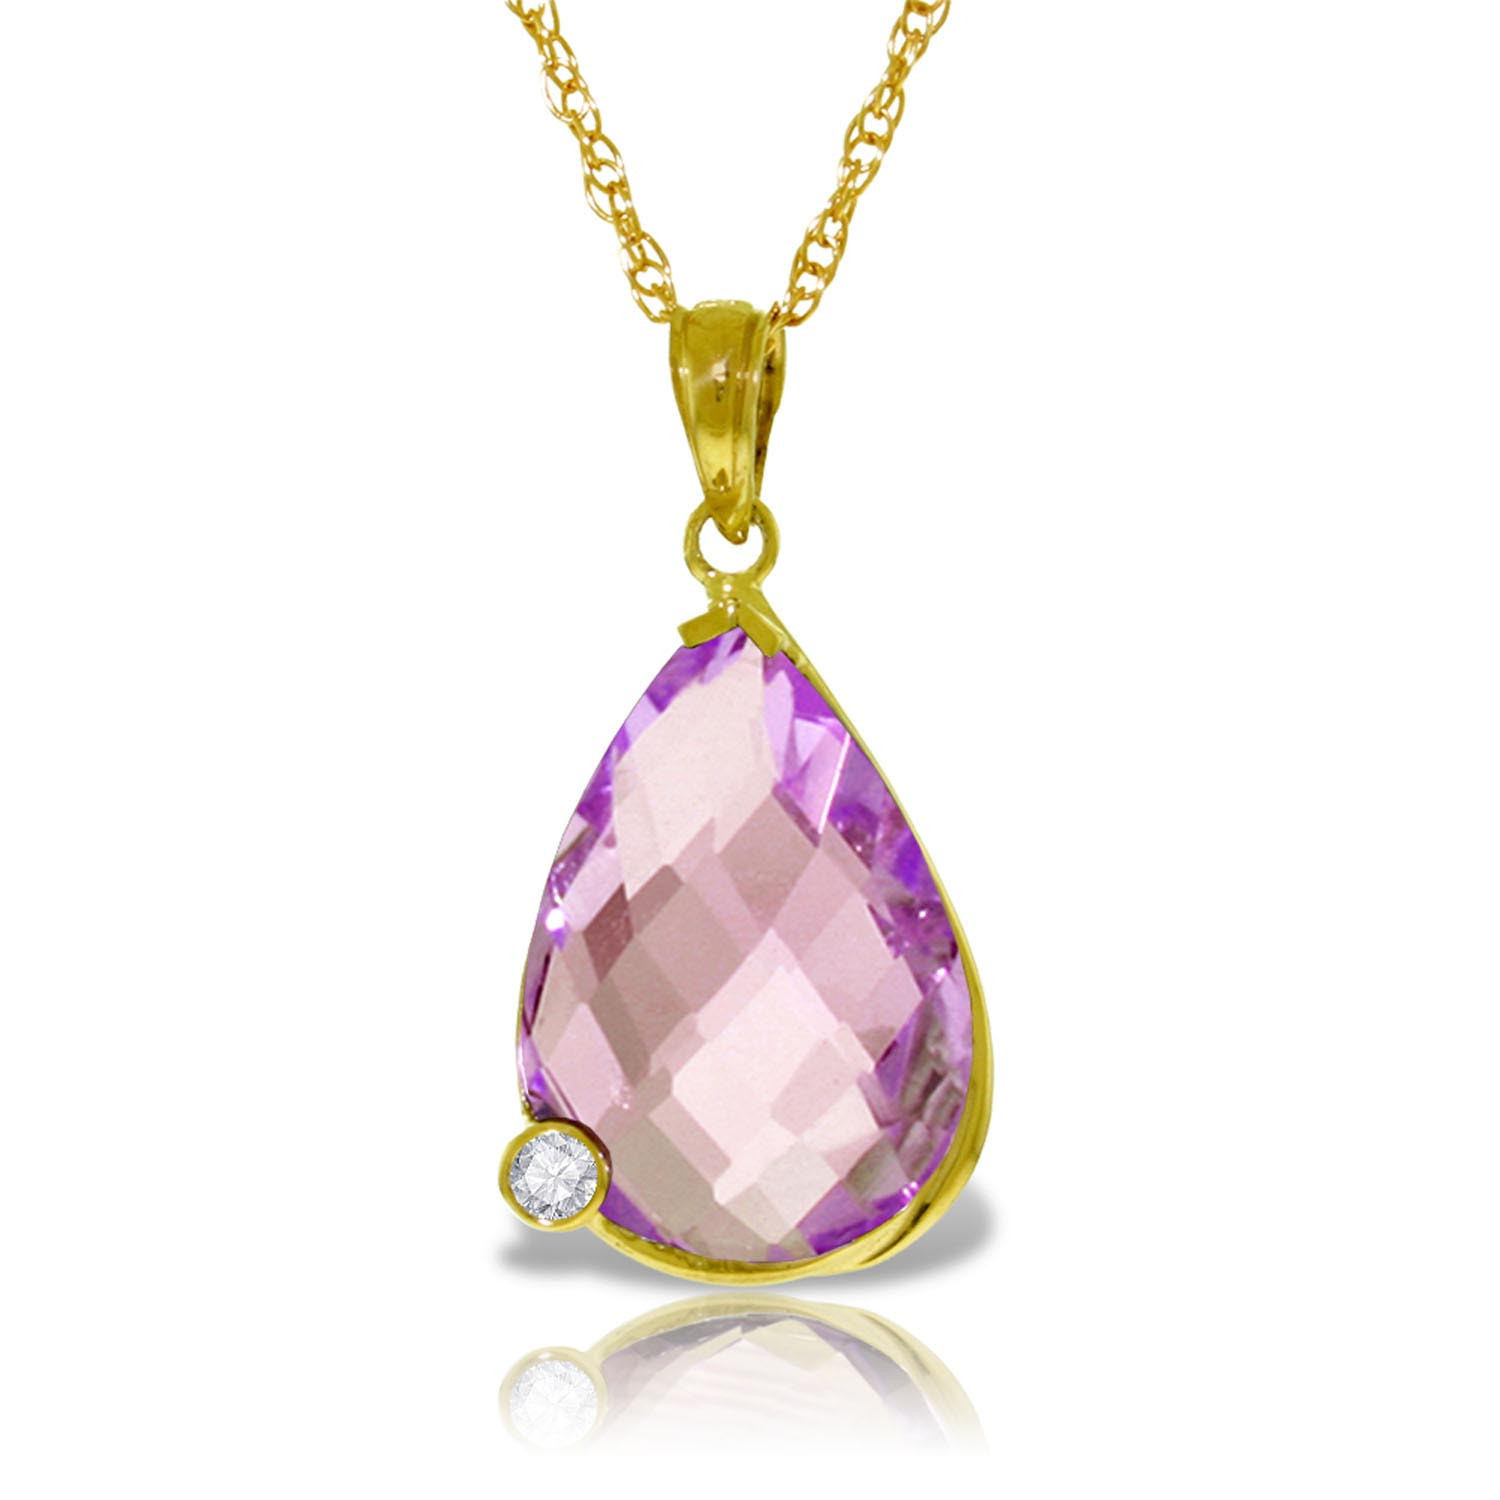 Amethyst & Diamond Chequer Pendant Necklace in 9ct Gold